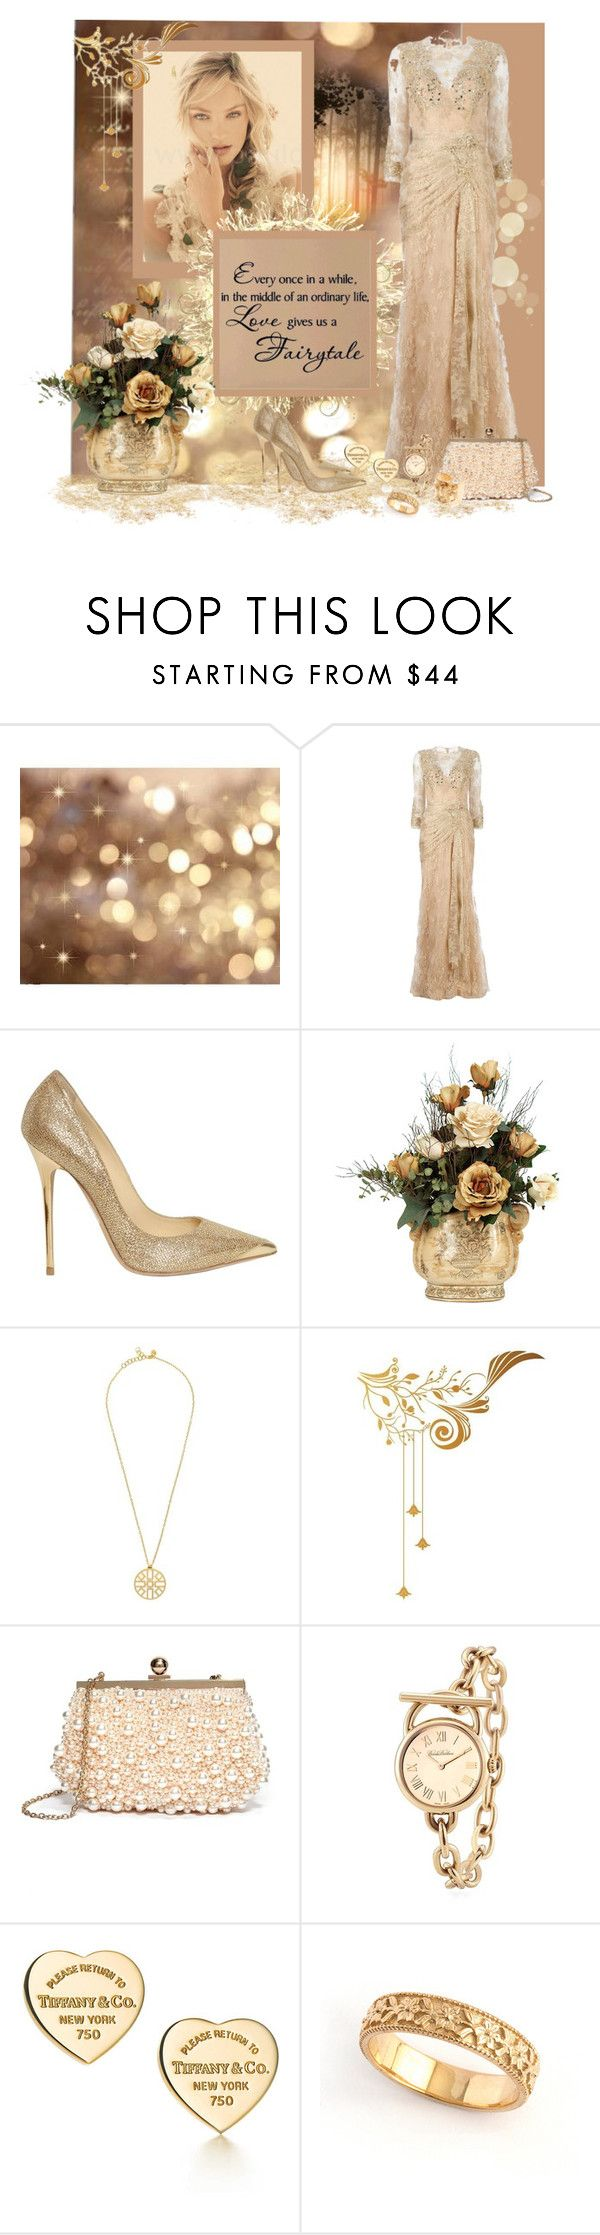 """""""Lovely and Lacey"""" by kimeaton ❤ liked on Polyvore featuring Zuhair Murad, Love Quotes Scarves, Jimmy Choo, Tory Burch, Surface Collective, GUESS by Marciano, Brooks Brothers, Tiffany & Co. and Tom Binns"""